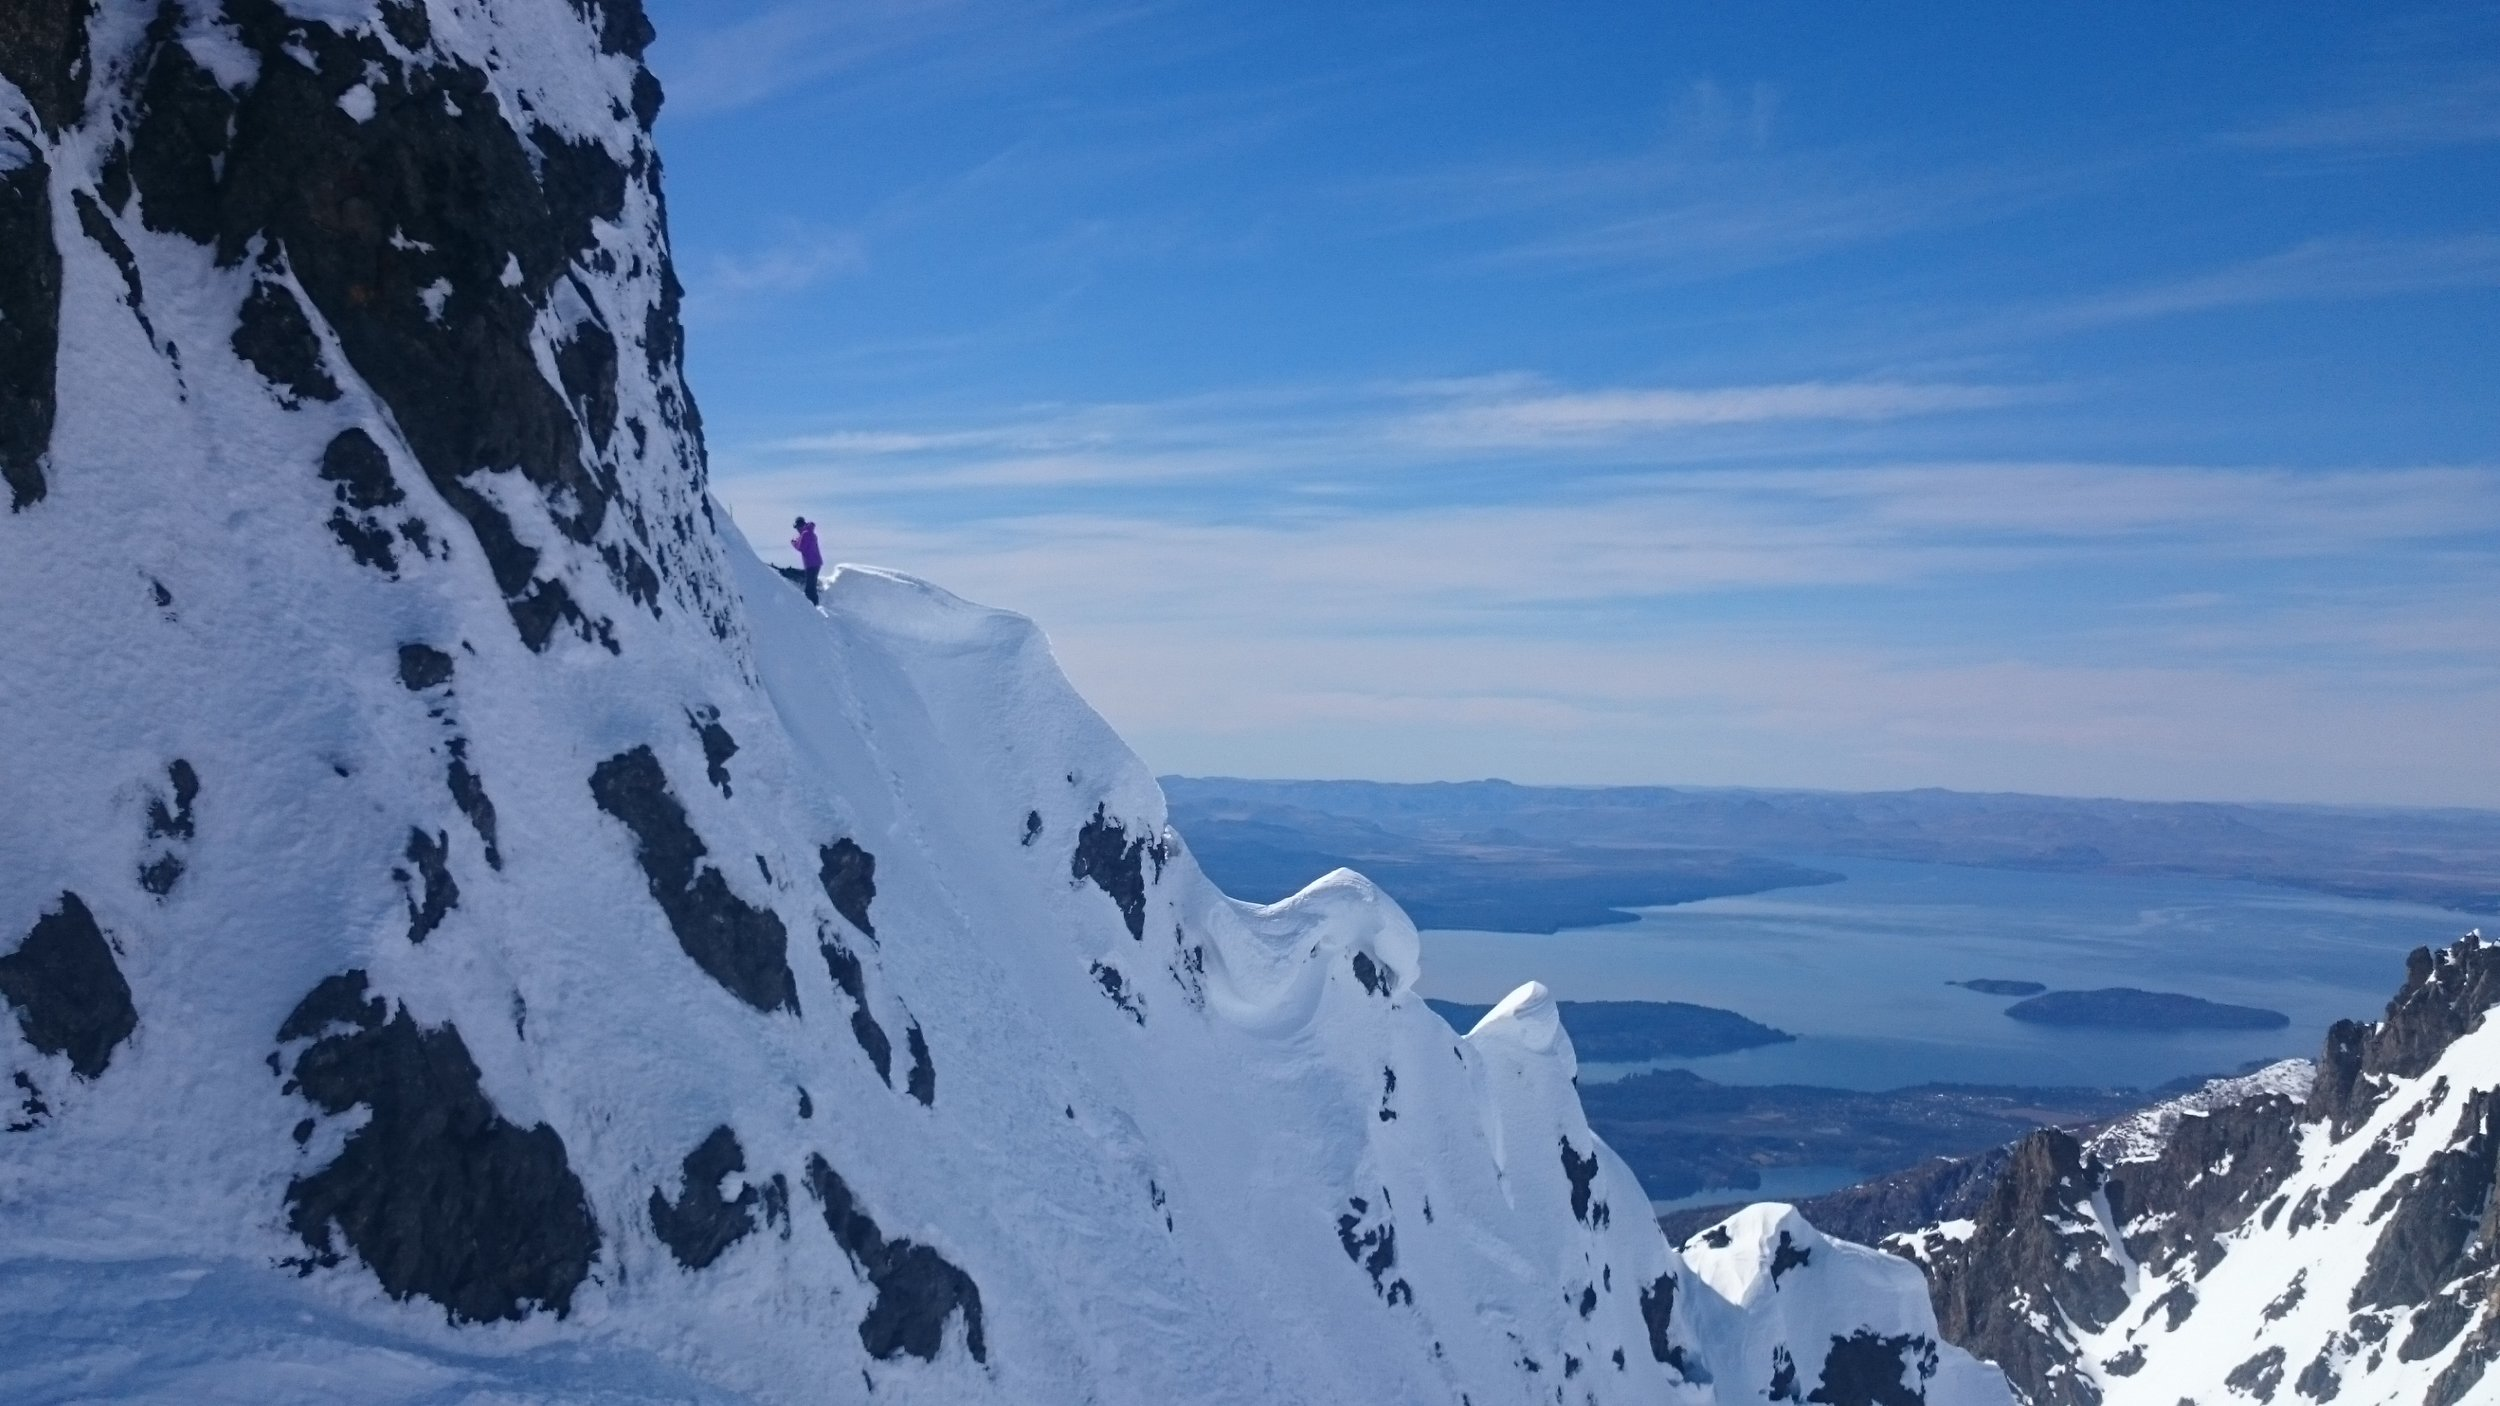 Getting ready to drop in. Christina Lusti in Argentina.